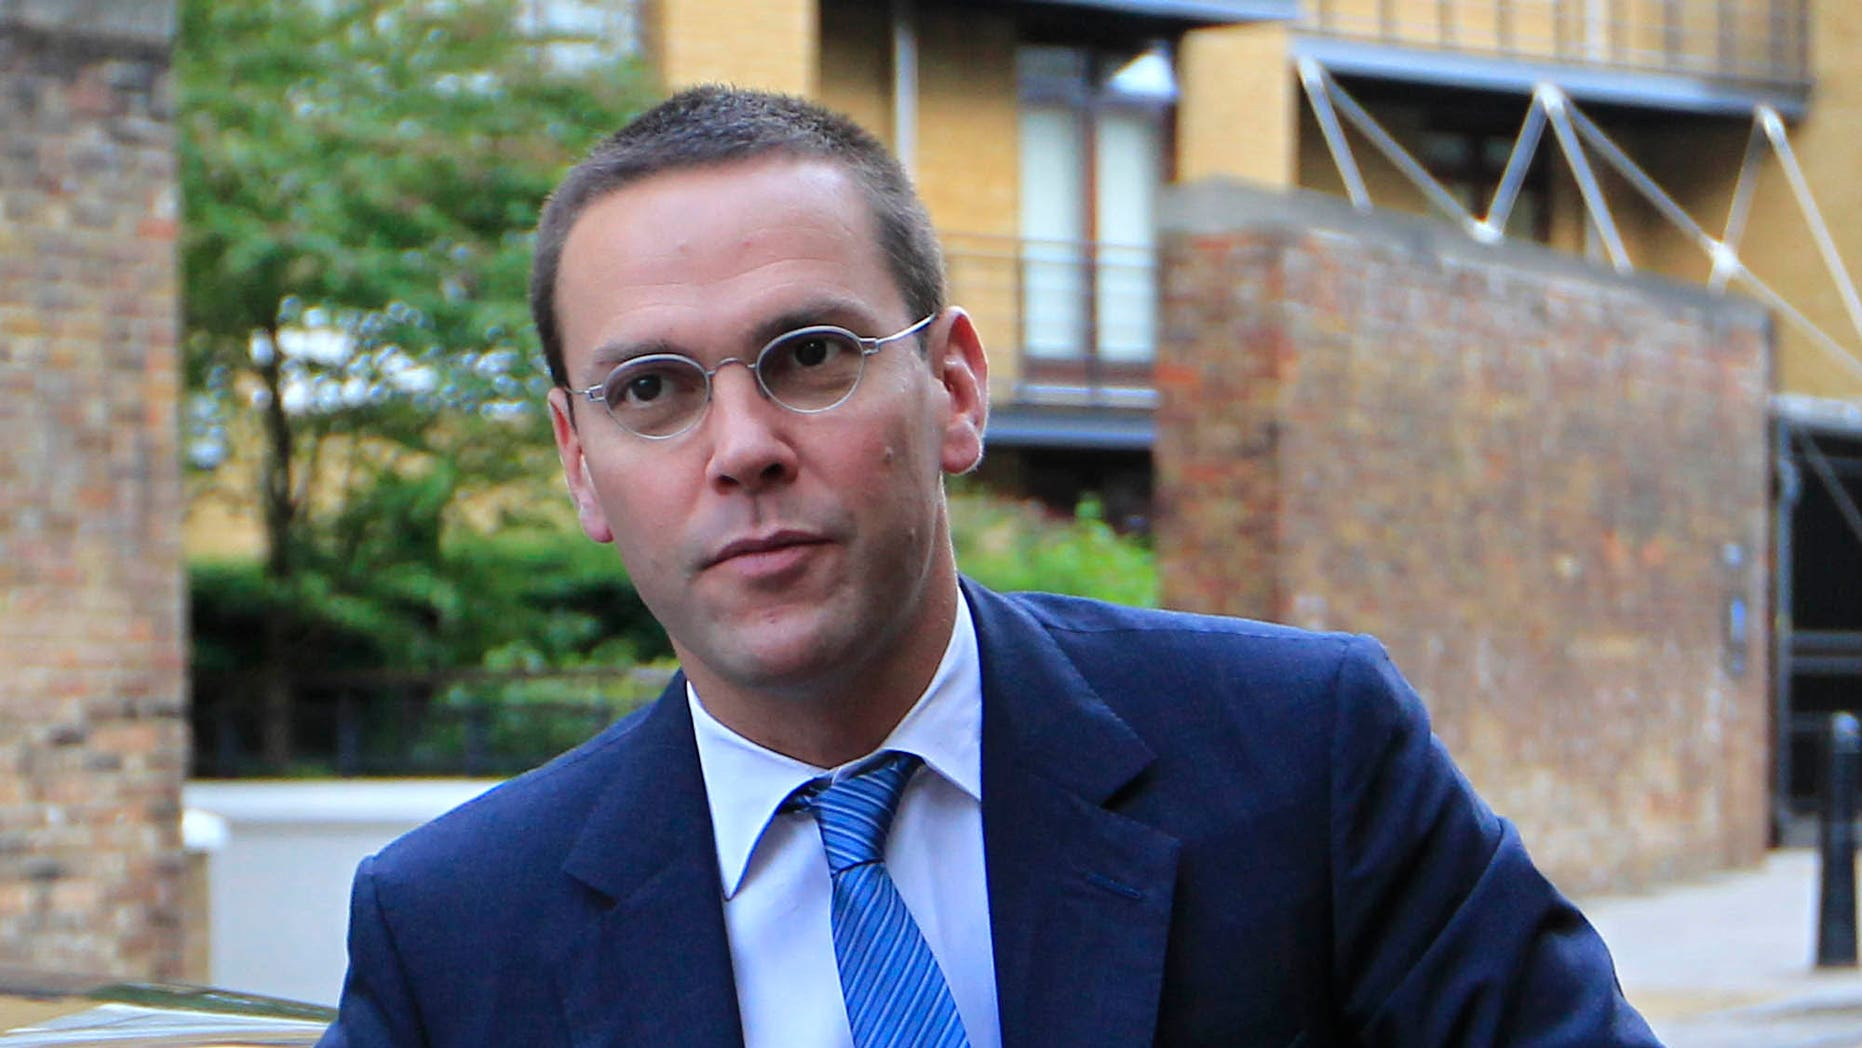 July 19: Chief executive of News Corporation Europe and Asia, James Murdoch, arrives at the News International headquarters in London.